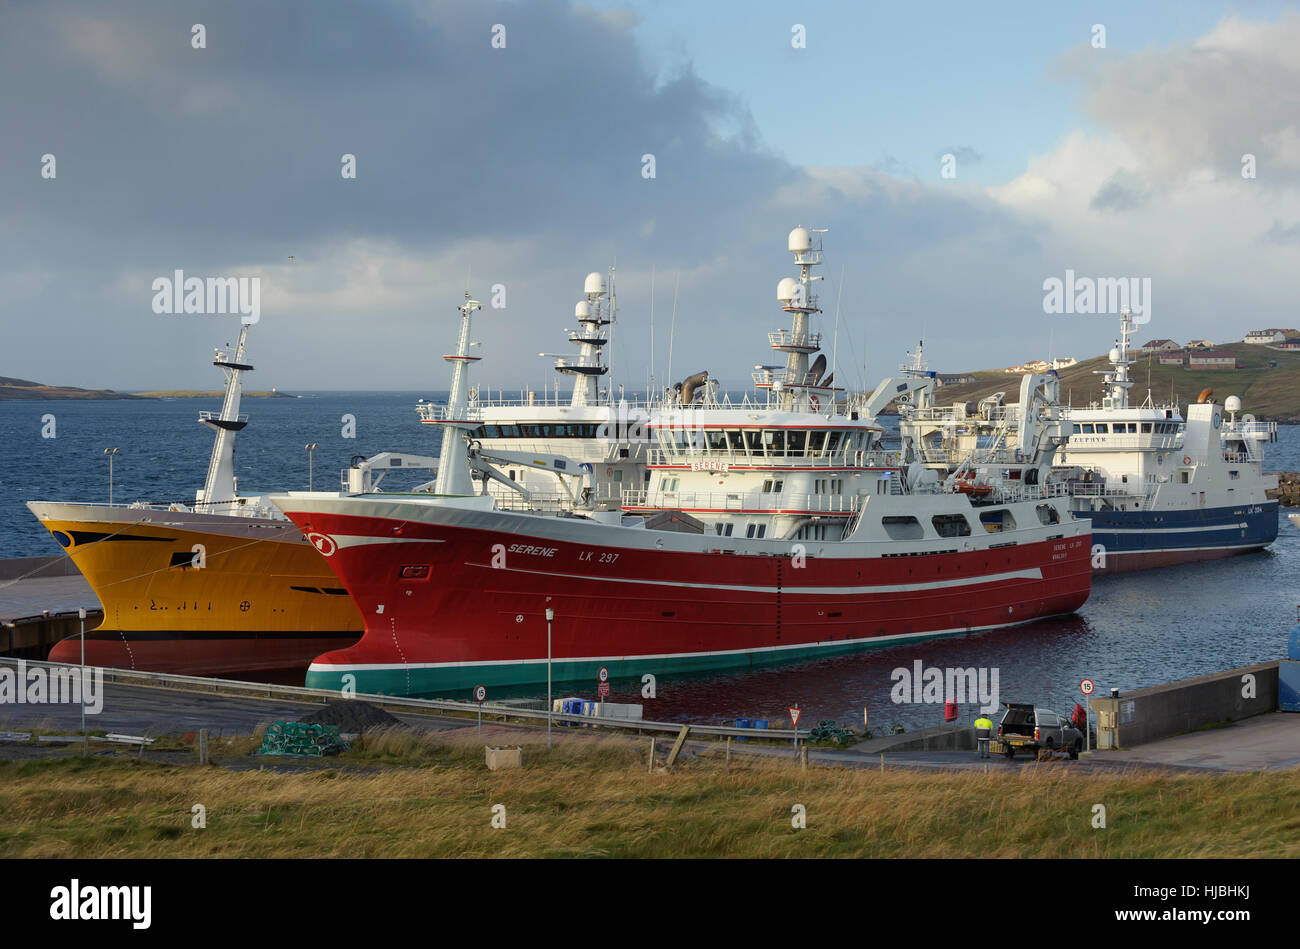 Pelagic trawlers (L to R) Charisma, Serene, and Zephyr in port at Symbister, isle of Whalsay, Shetland. October - Stock Image